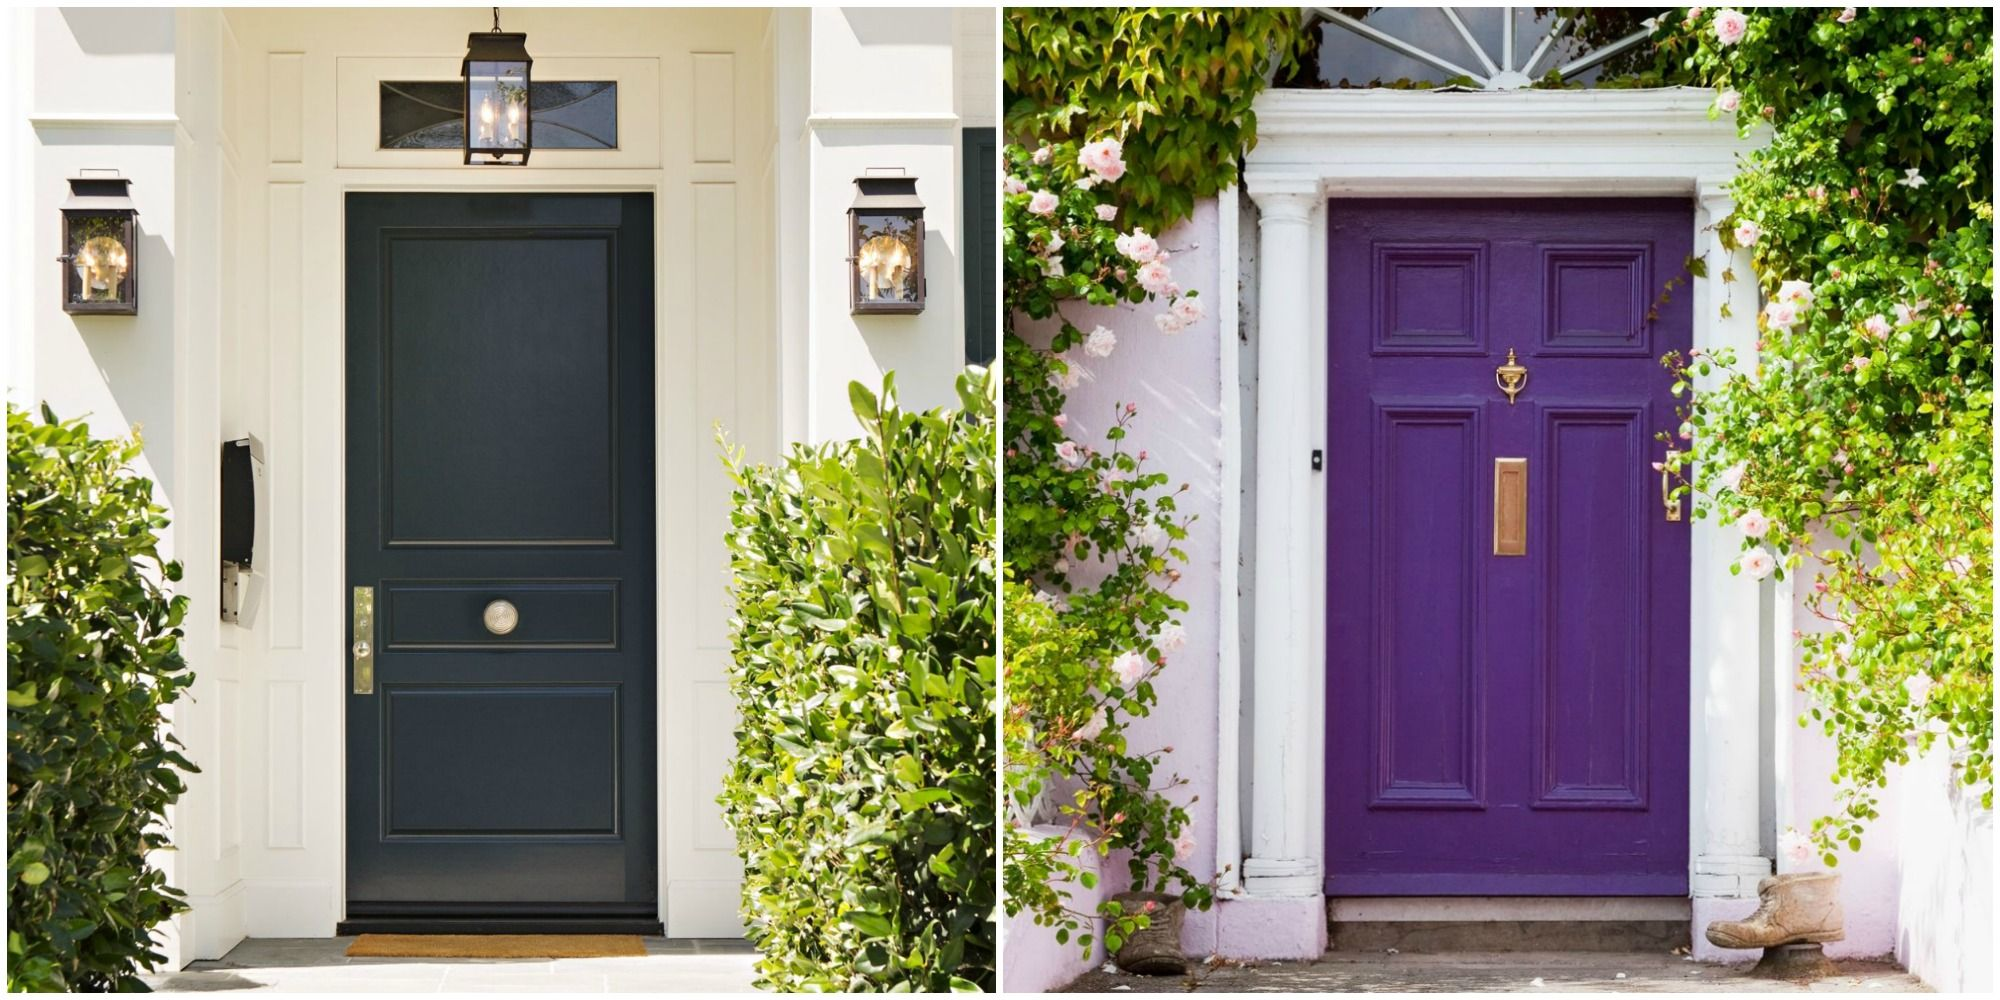 Go sunny with a cheery yellow demure with a dove gray or bold with a true red. After all your front door is your home\u0027s and first impression. & 14+ Best Front Door Paint Colors - Paint Ideas for Front Doors Pezcame.Com